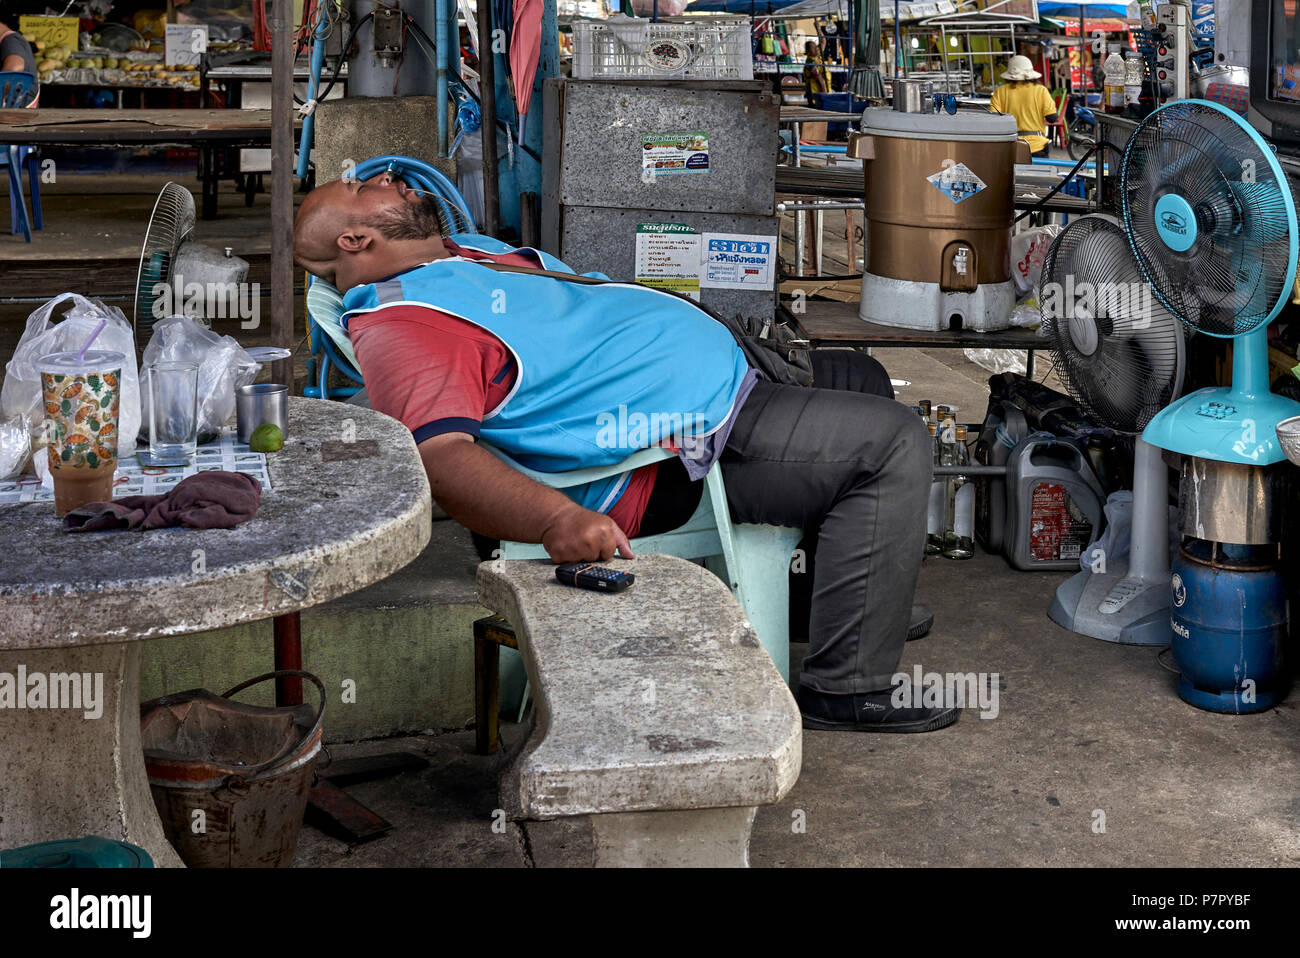 thailand-a-very-hot-day-and-a-large-man-